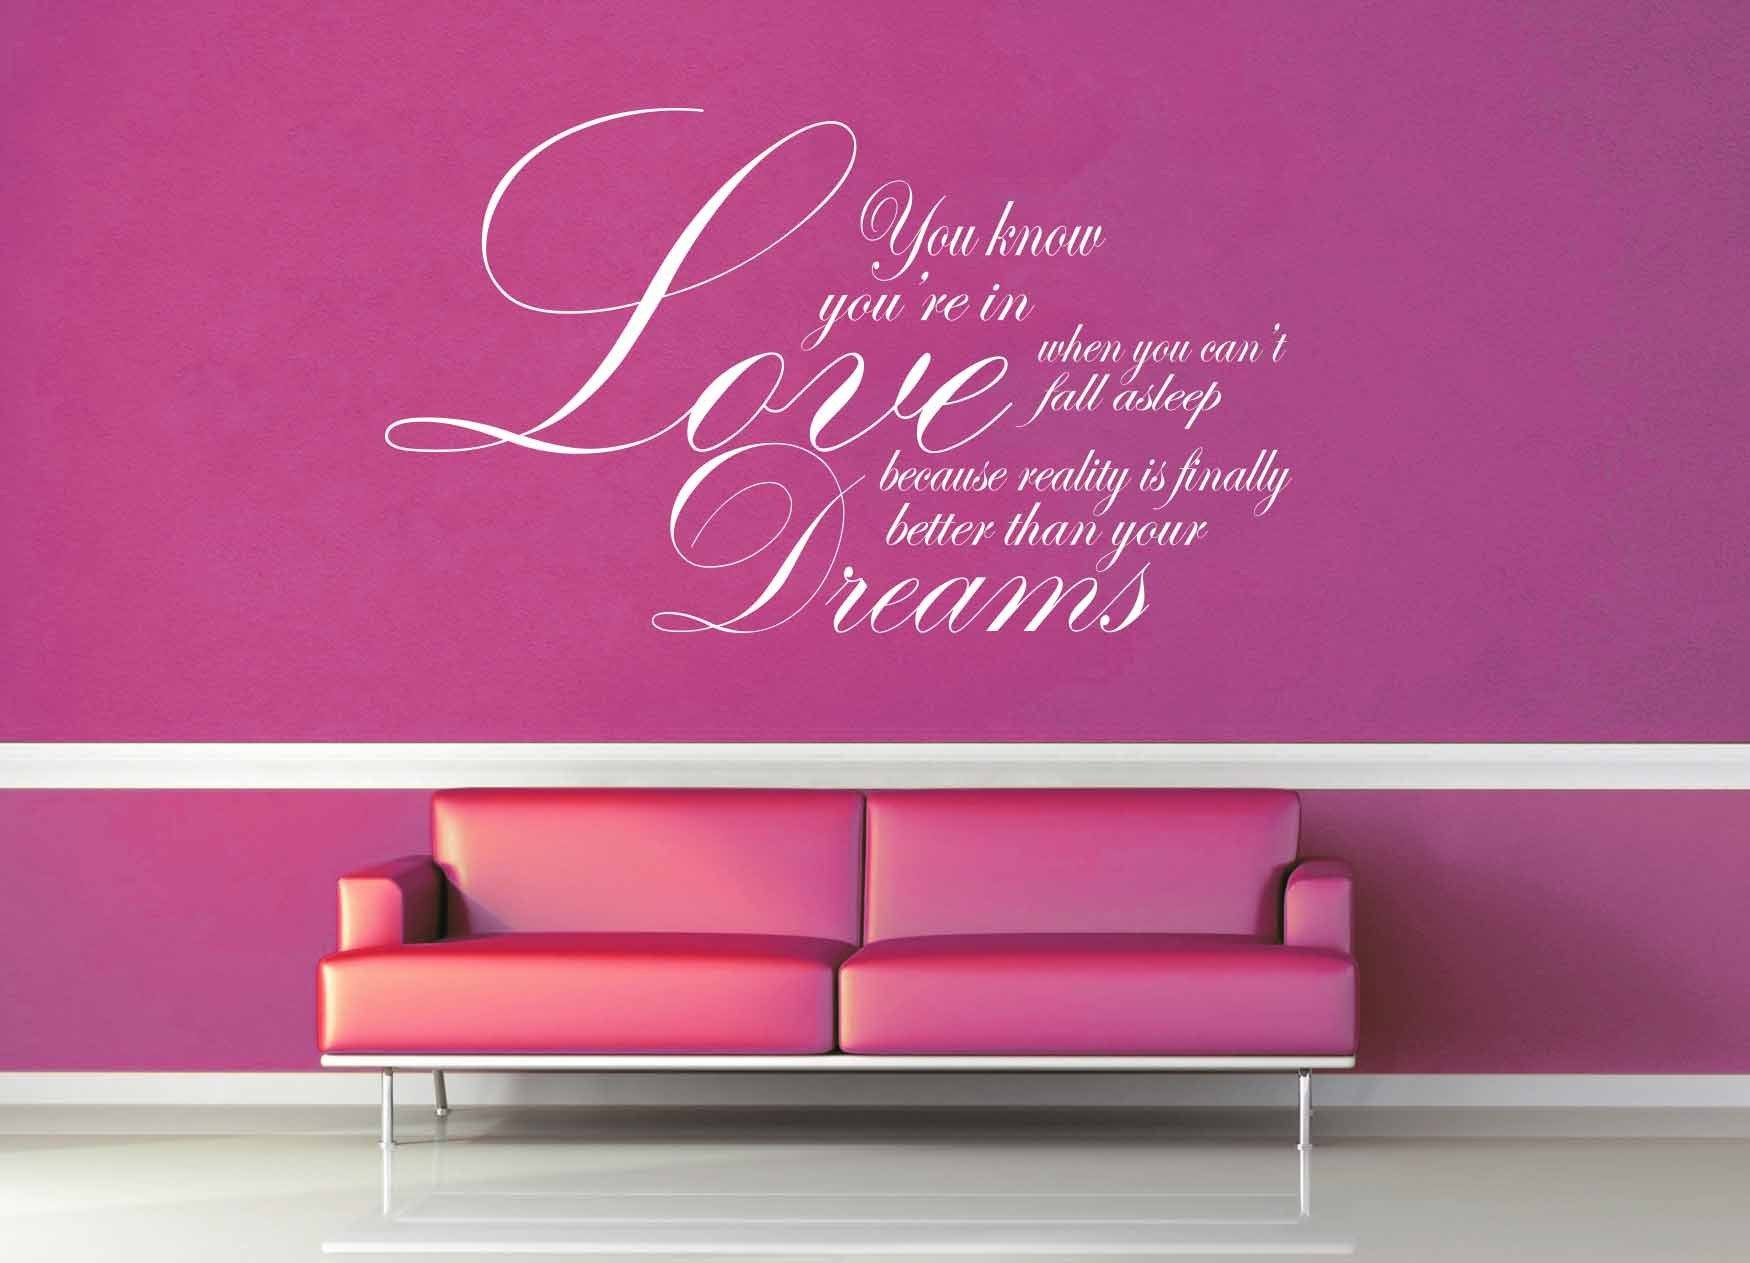 Love Better than Dreams - Dr Suess Quote - Wall Decal